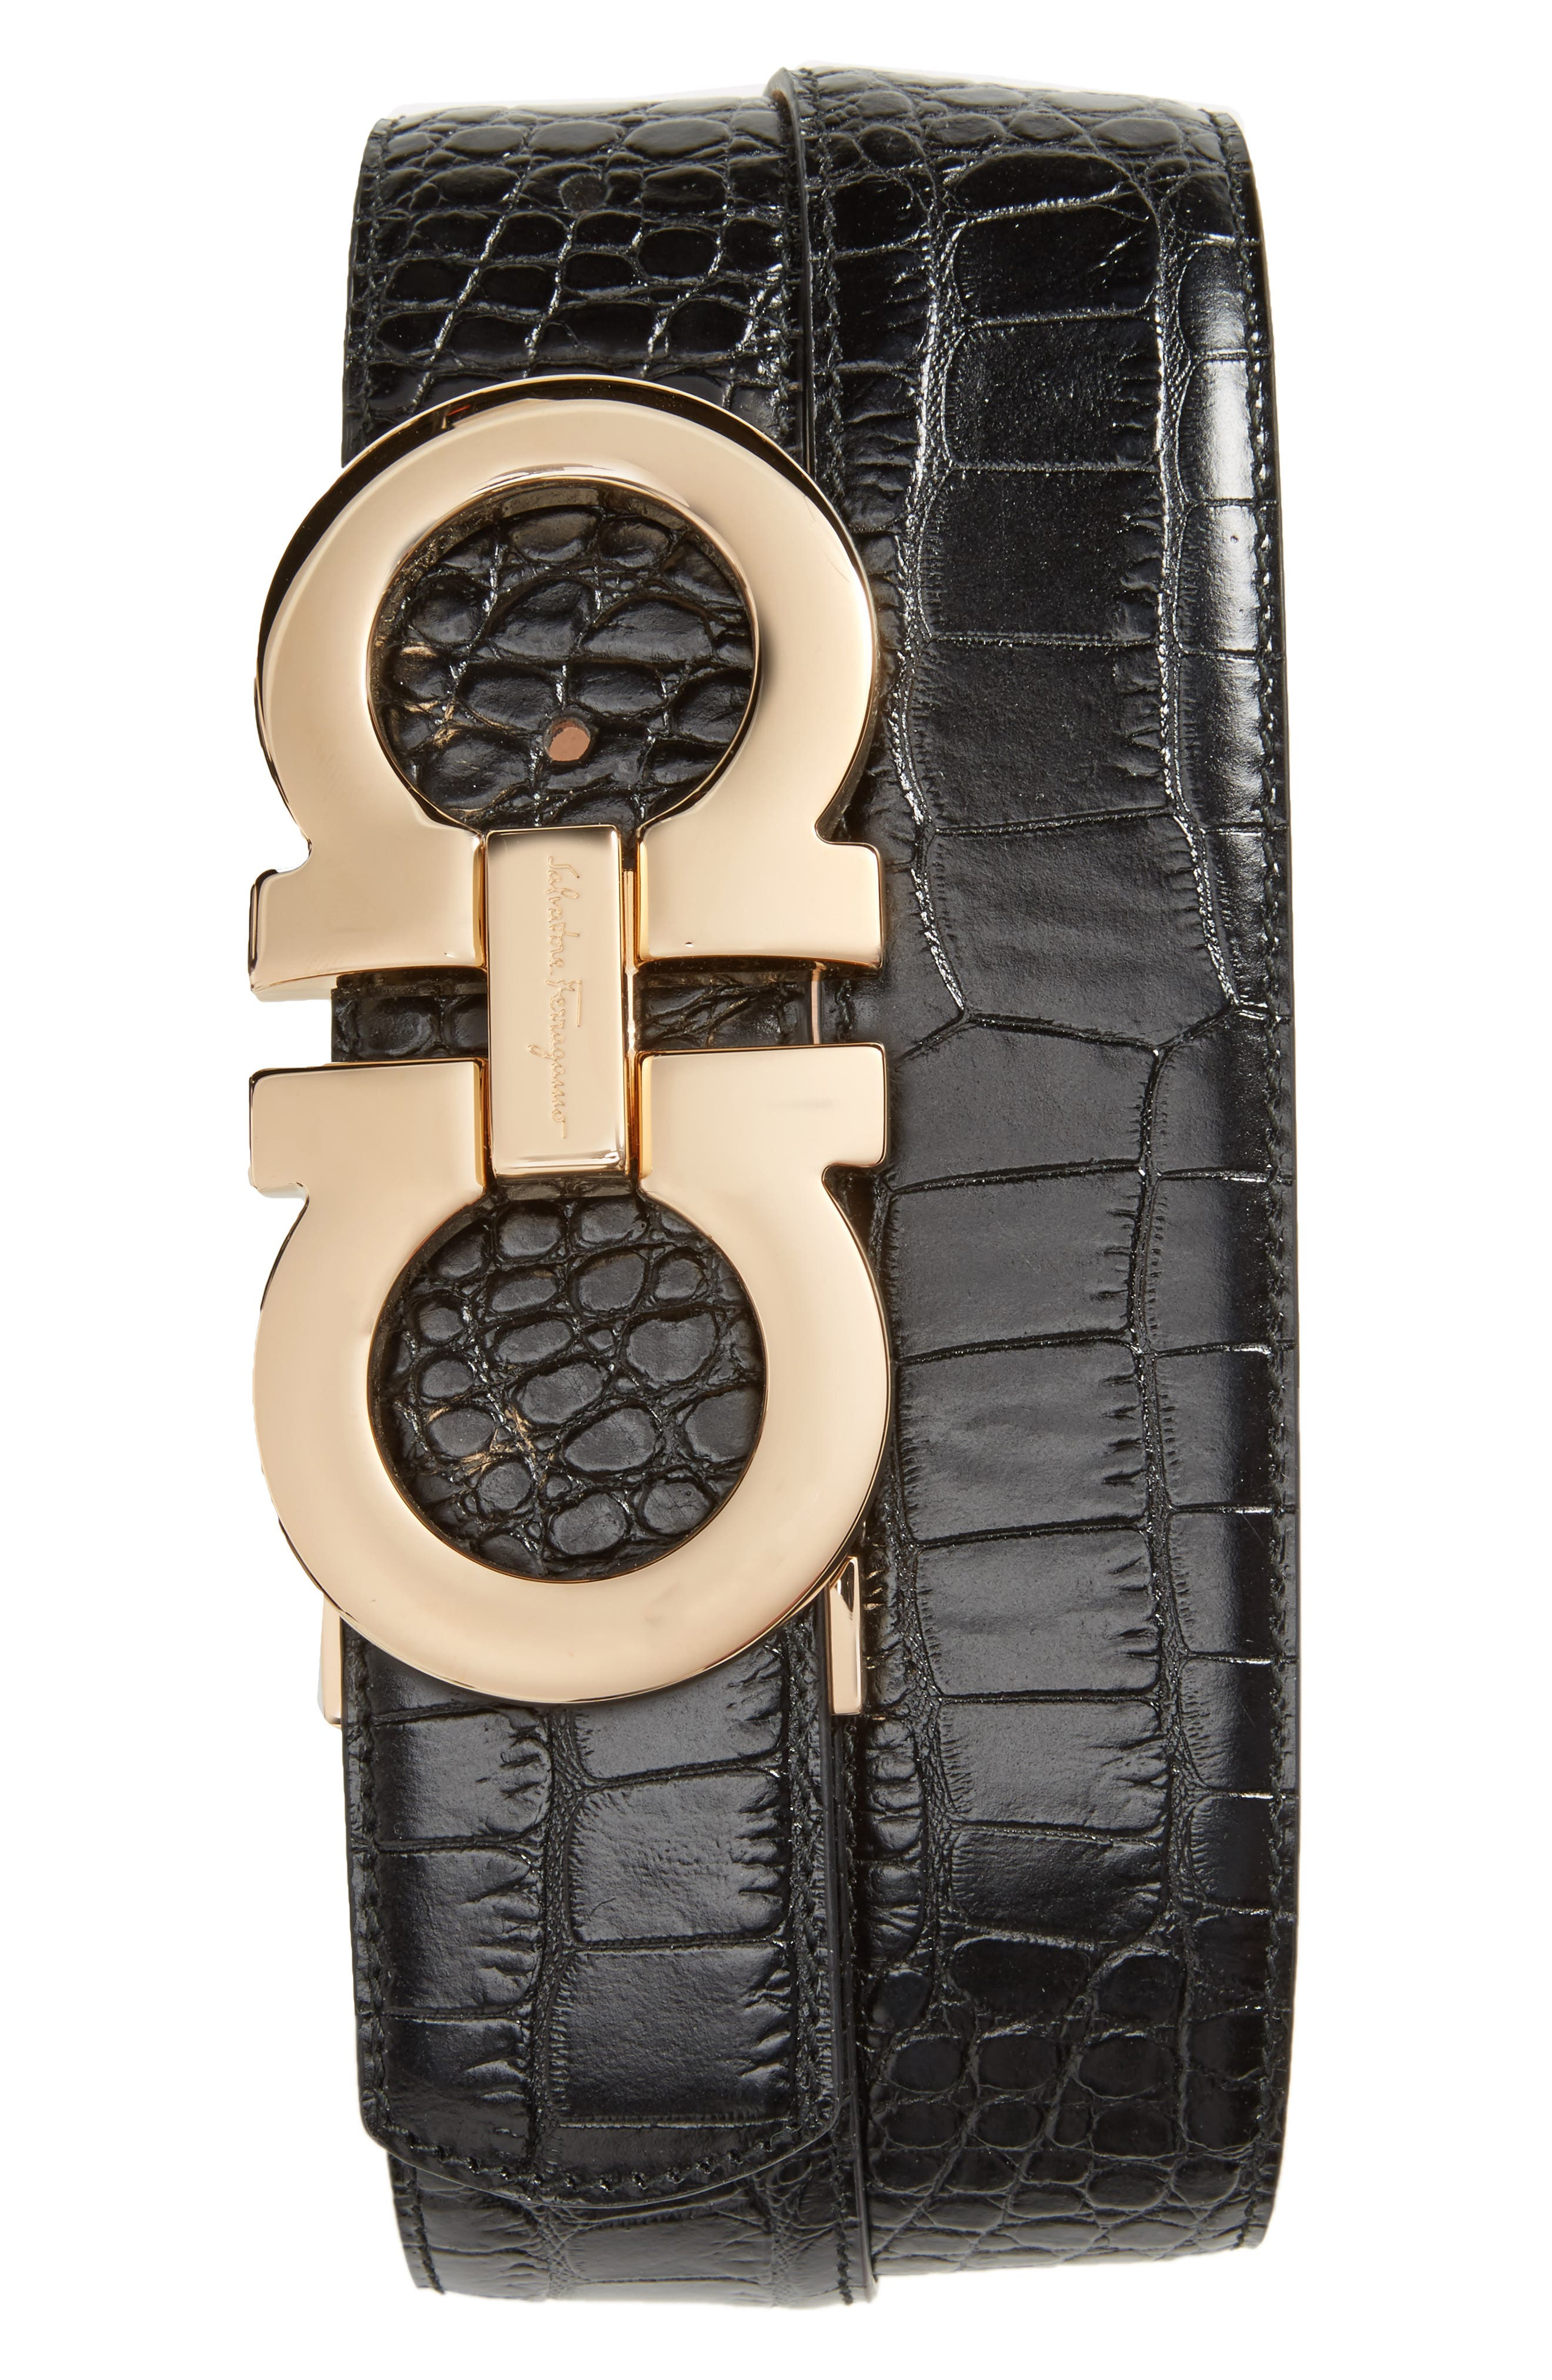 Salvatore Ferragamo Gancini Leather Belt